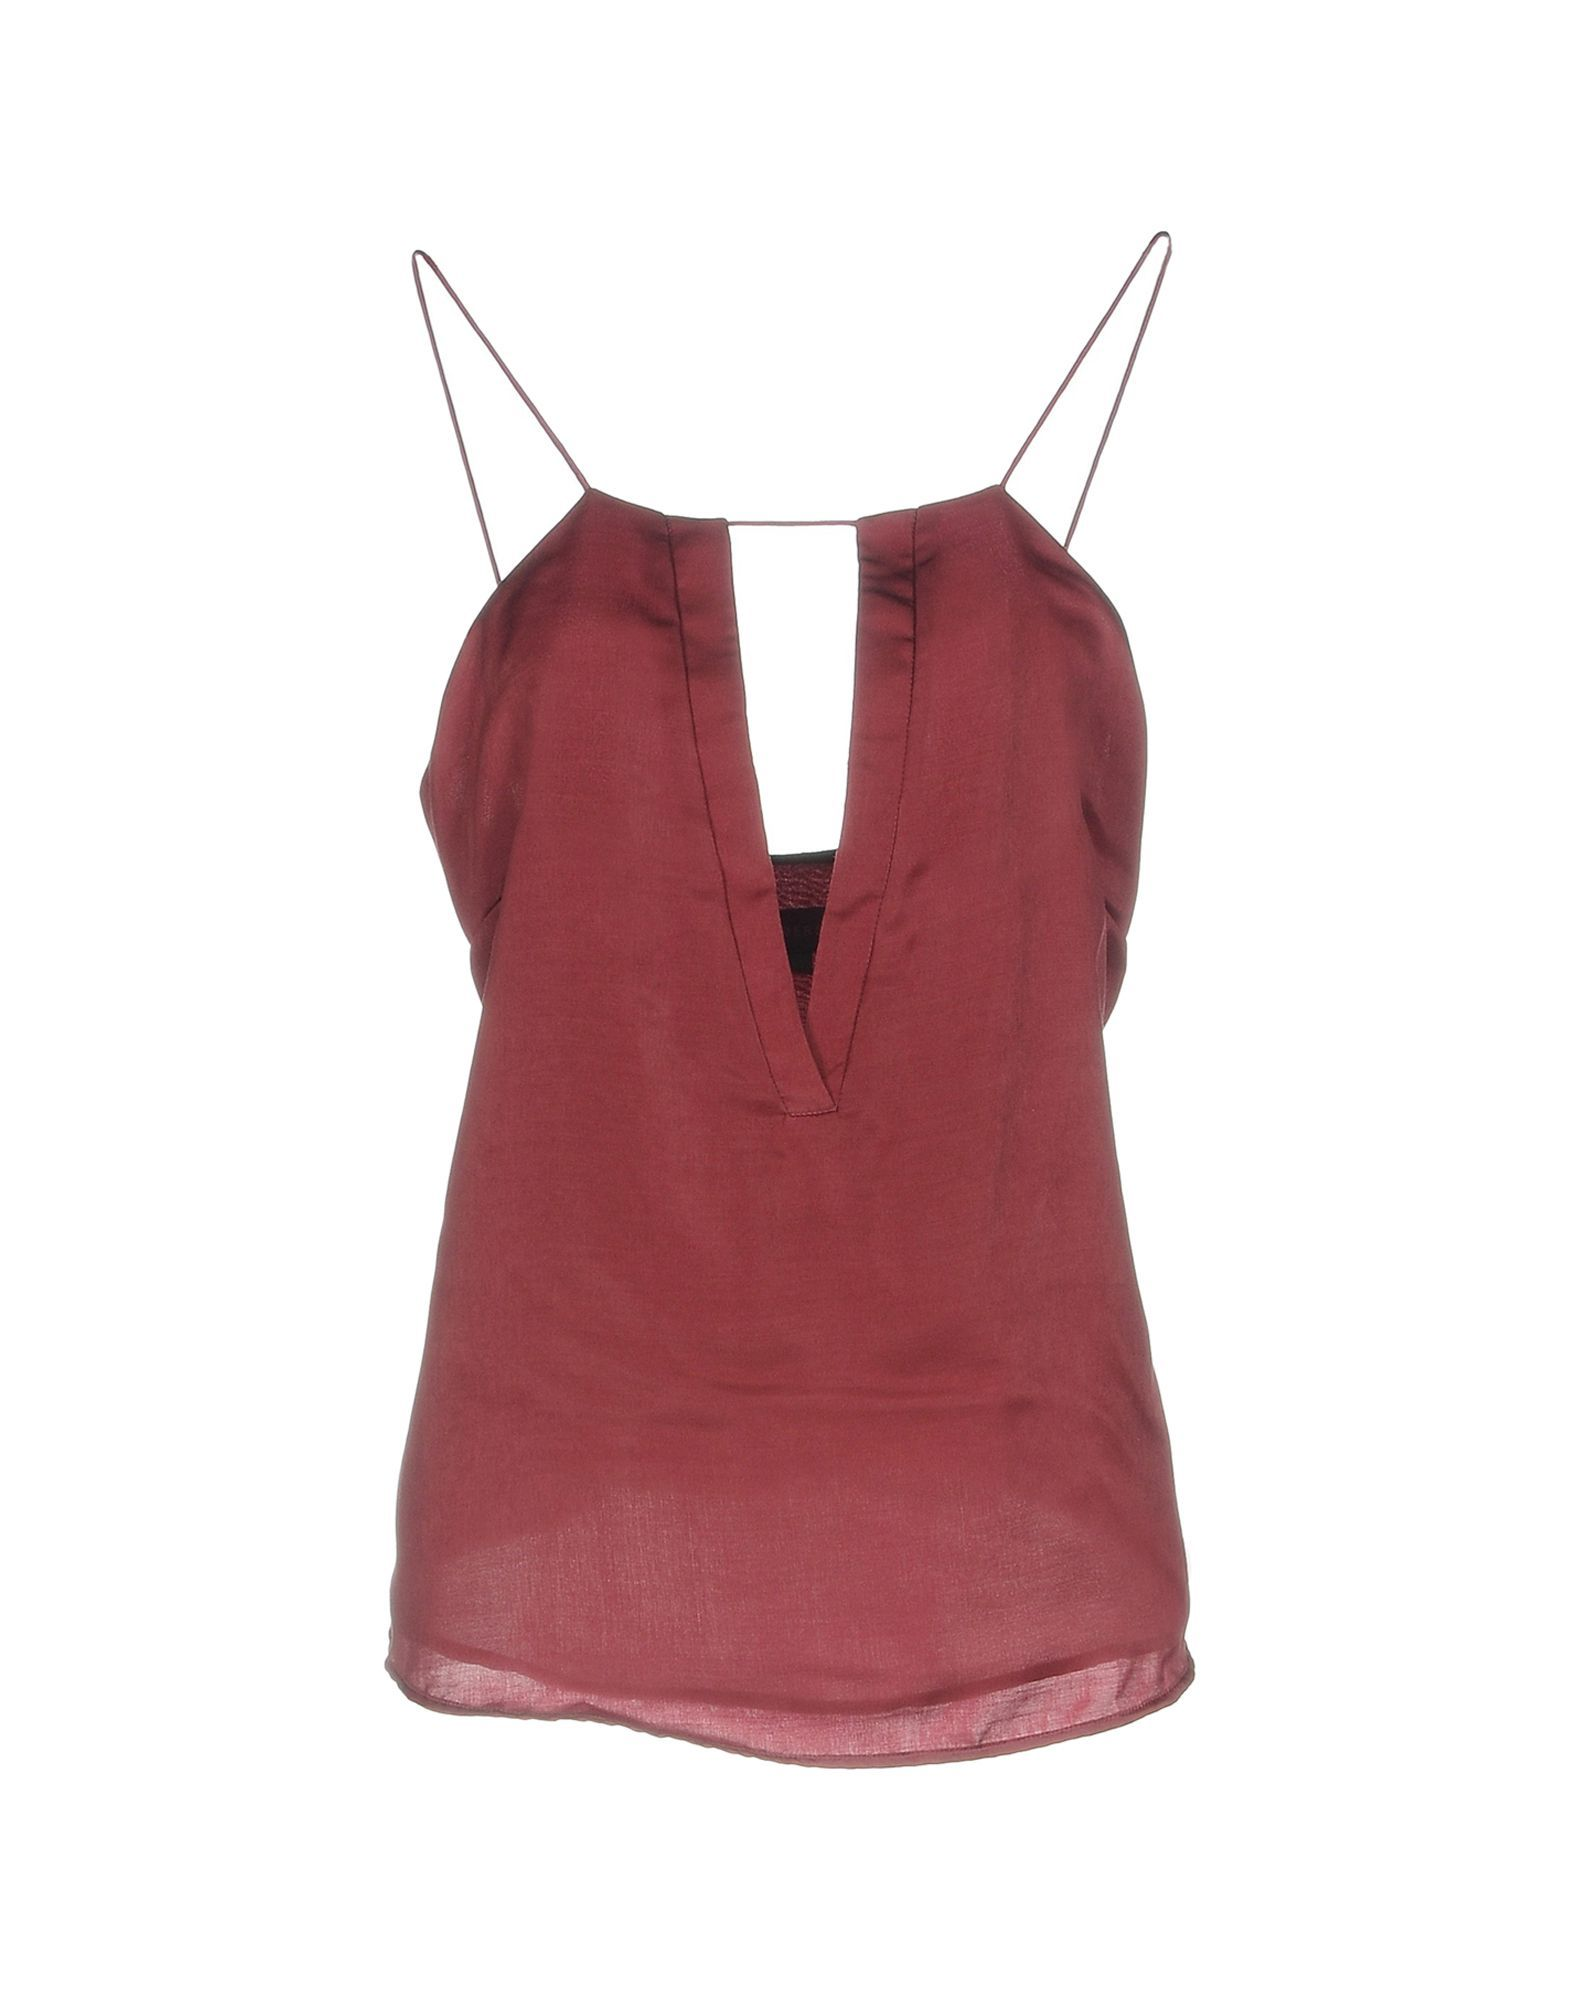 Finders Keepers Garnet Camisole